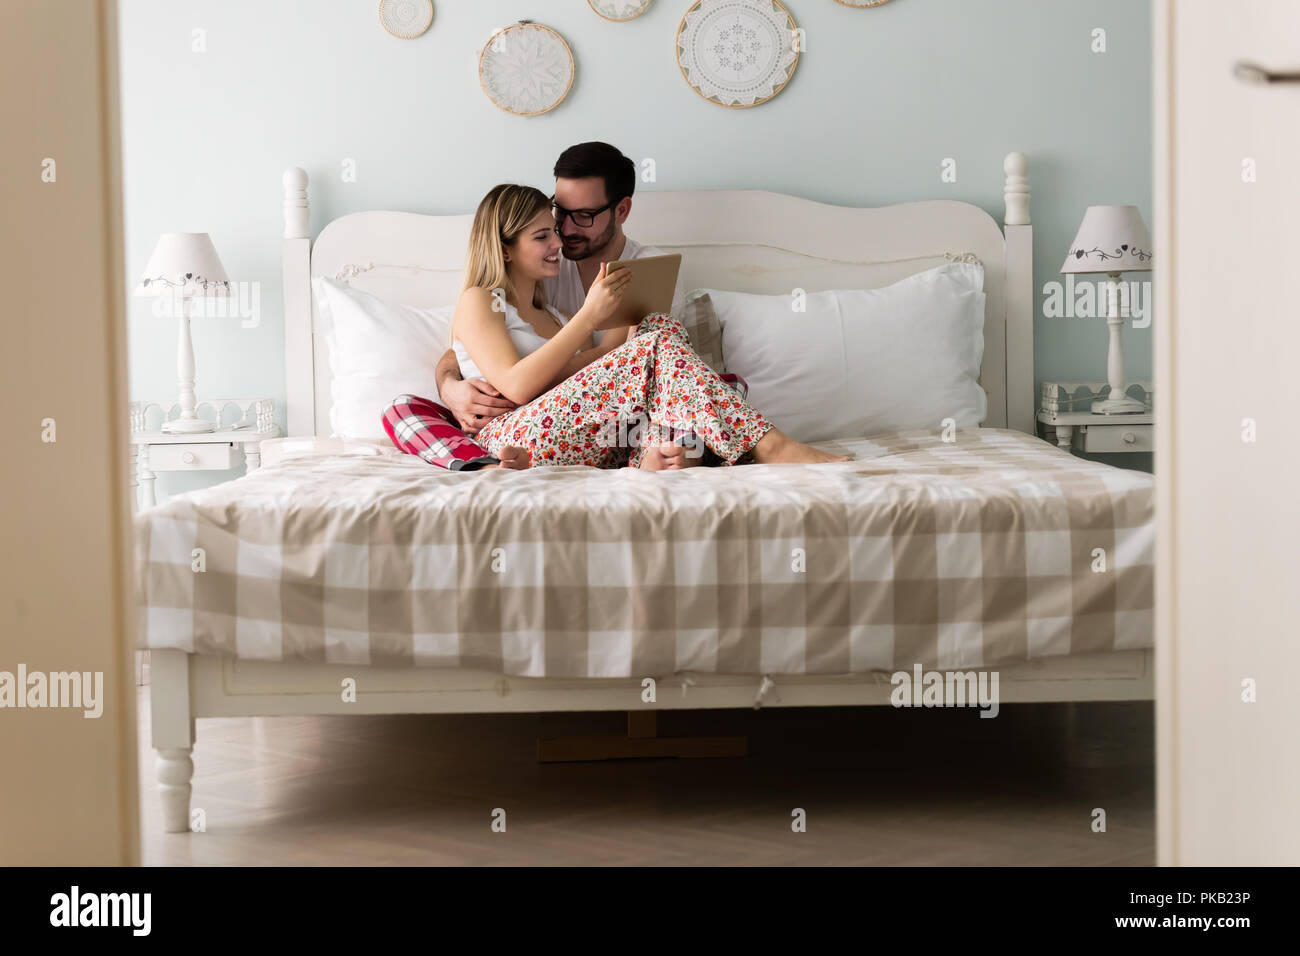 Young Attractive Couple Using Tablet In Bedroom Stock Photo Alamy